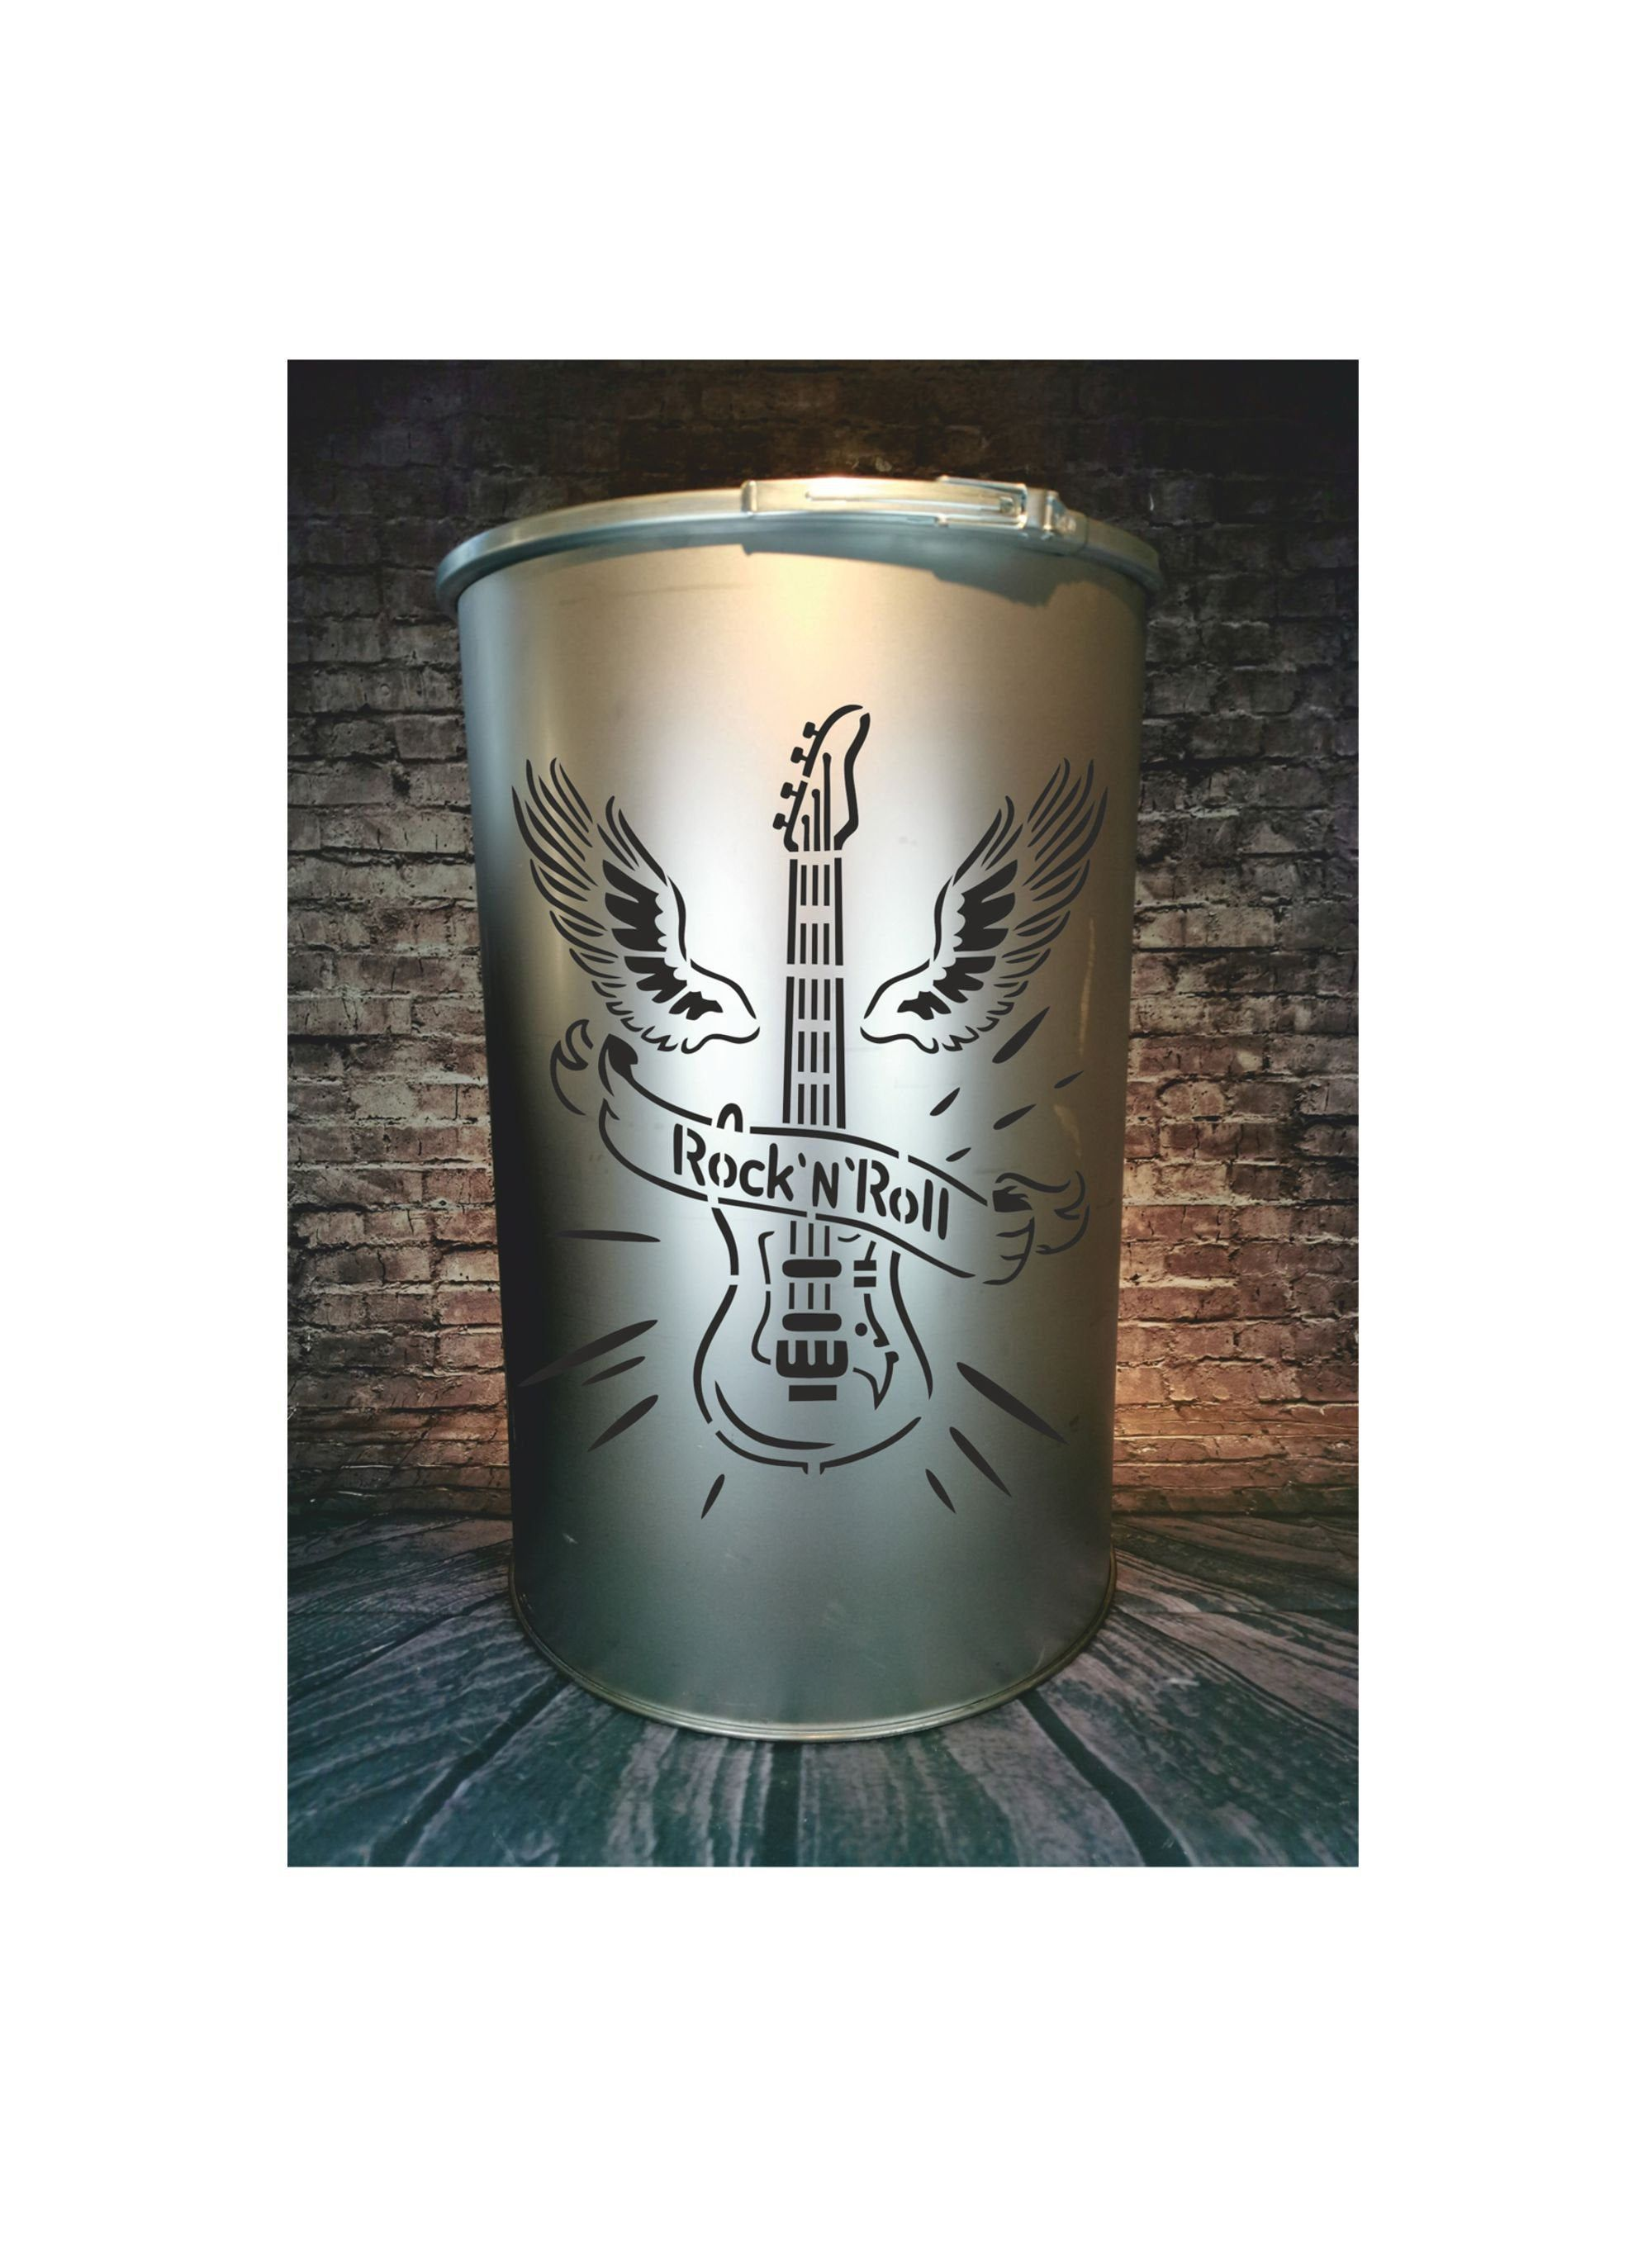 Fire Barrel Guitar Rock N Roll Grill Barrel Rustic Garden Decoration Fireplace For Grilling Barbecue Gift Idea Customizable Rustic Gardens Barrel Gifts